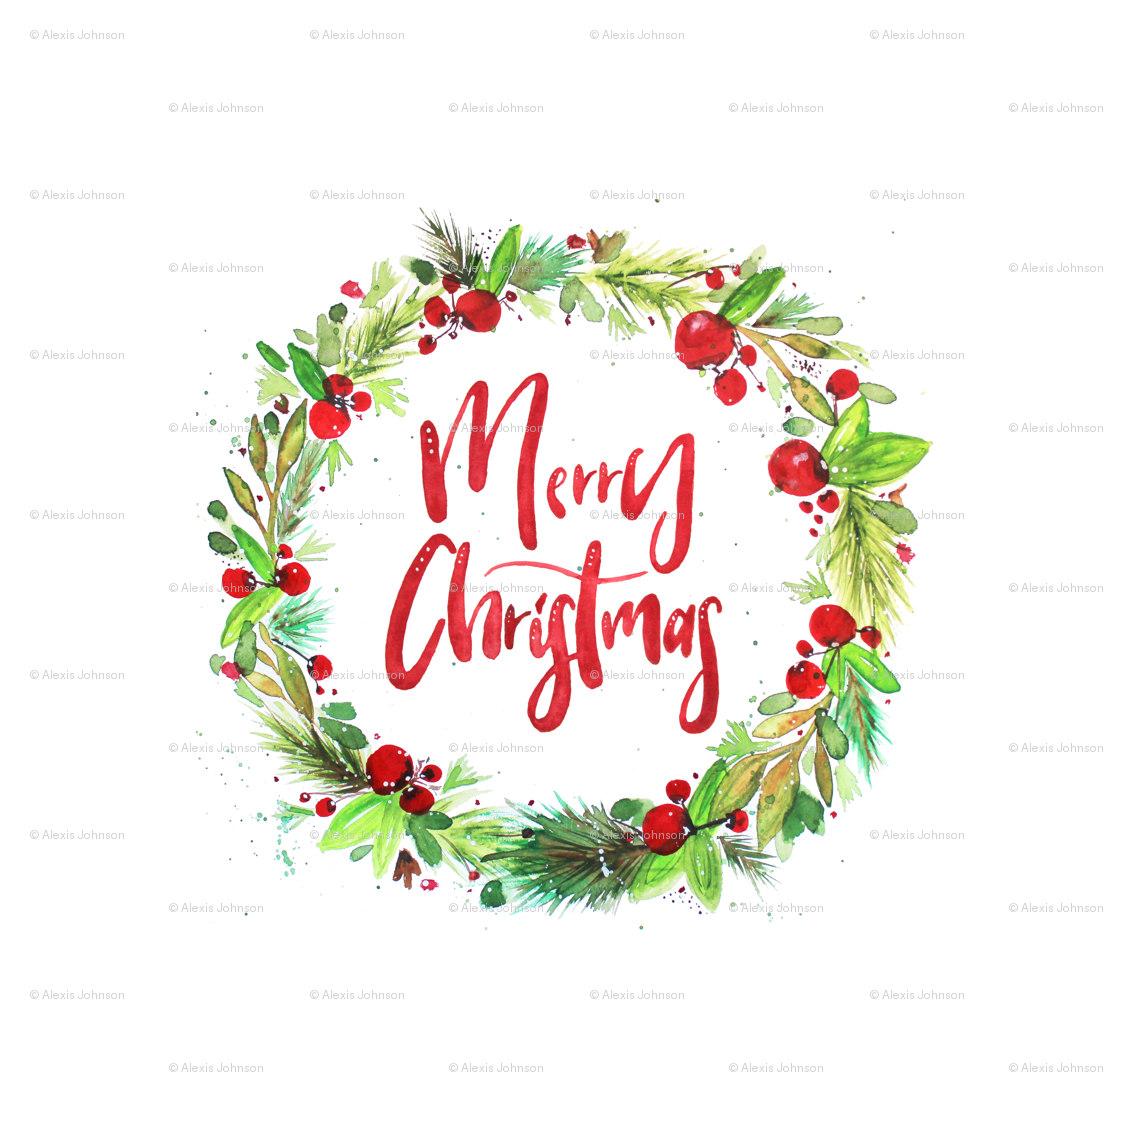 Watercolor Christmas Wreath Png.Watercolor Merry Christmas Wreath Giftwrap Alexis Johnson